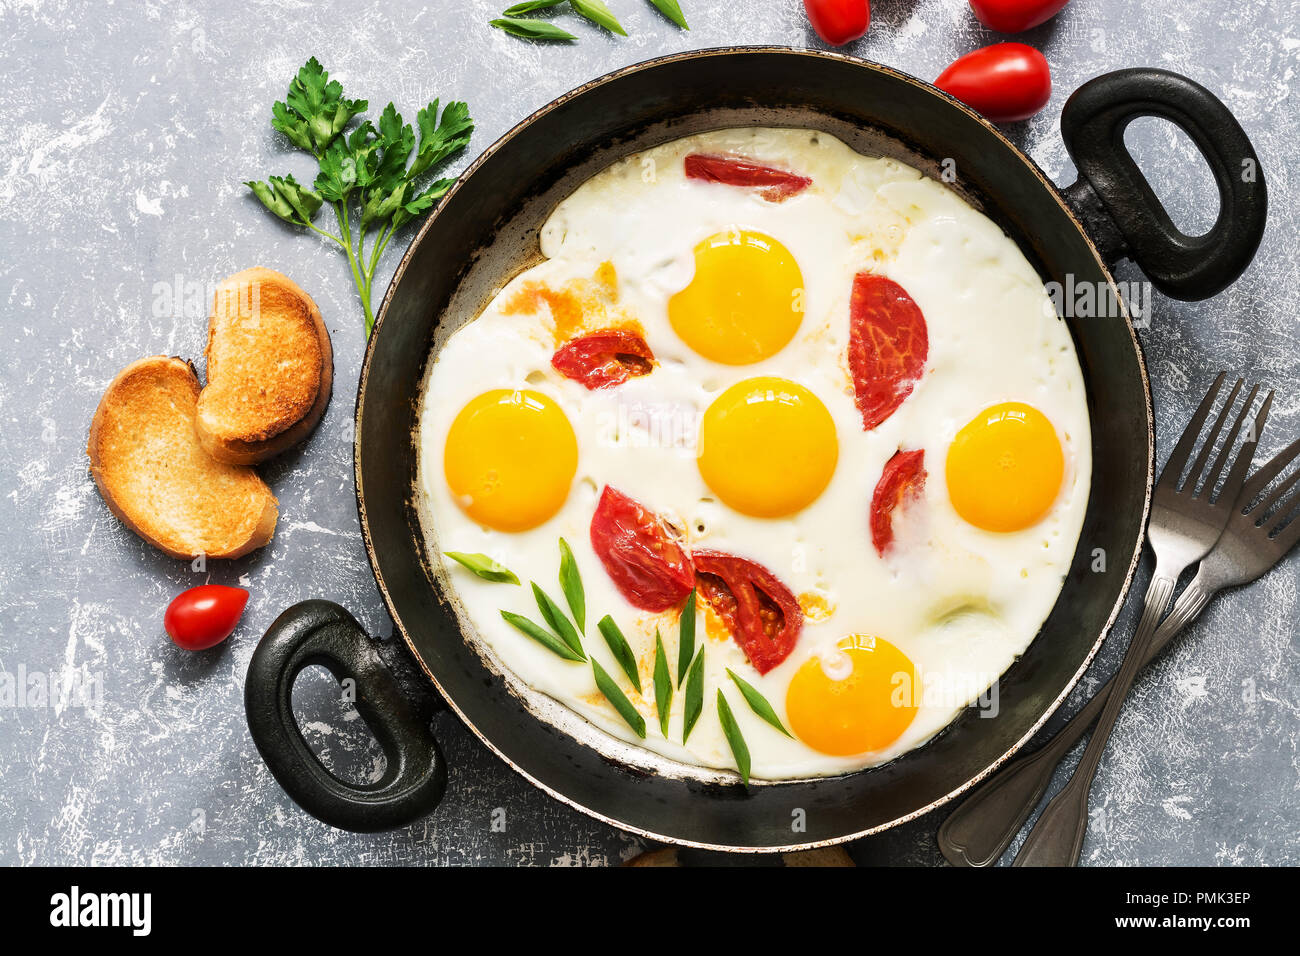 Fried eggs with tomatoes in a frying pan, gray background.Flat lay. - Stock Image